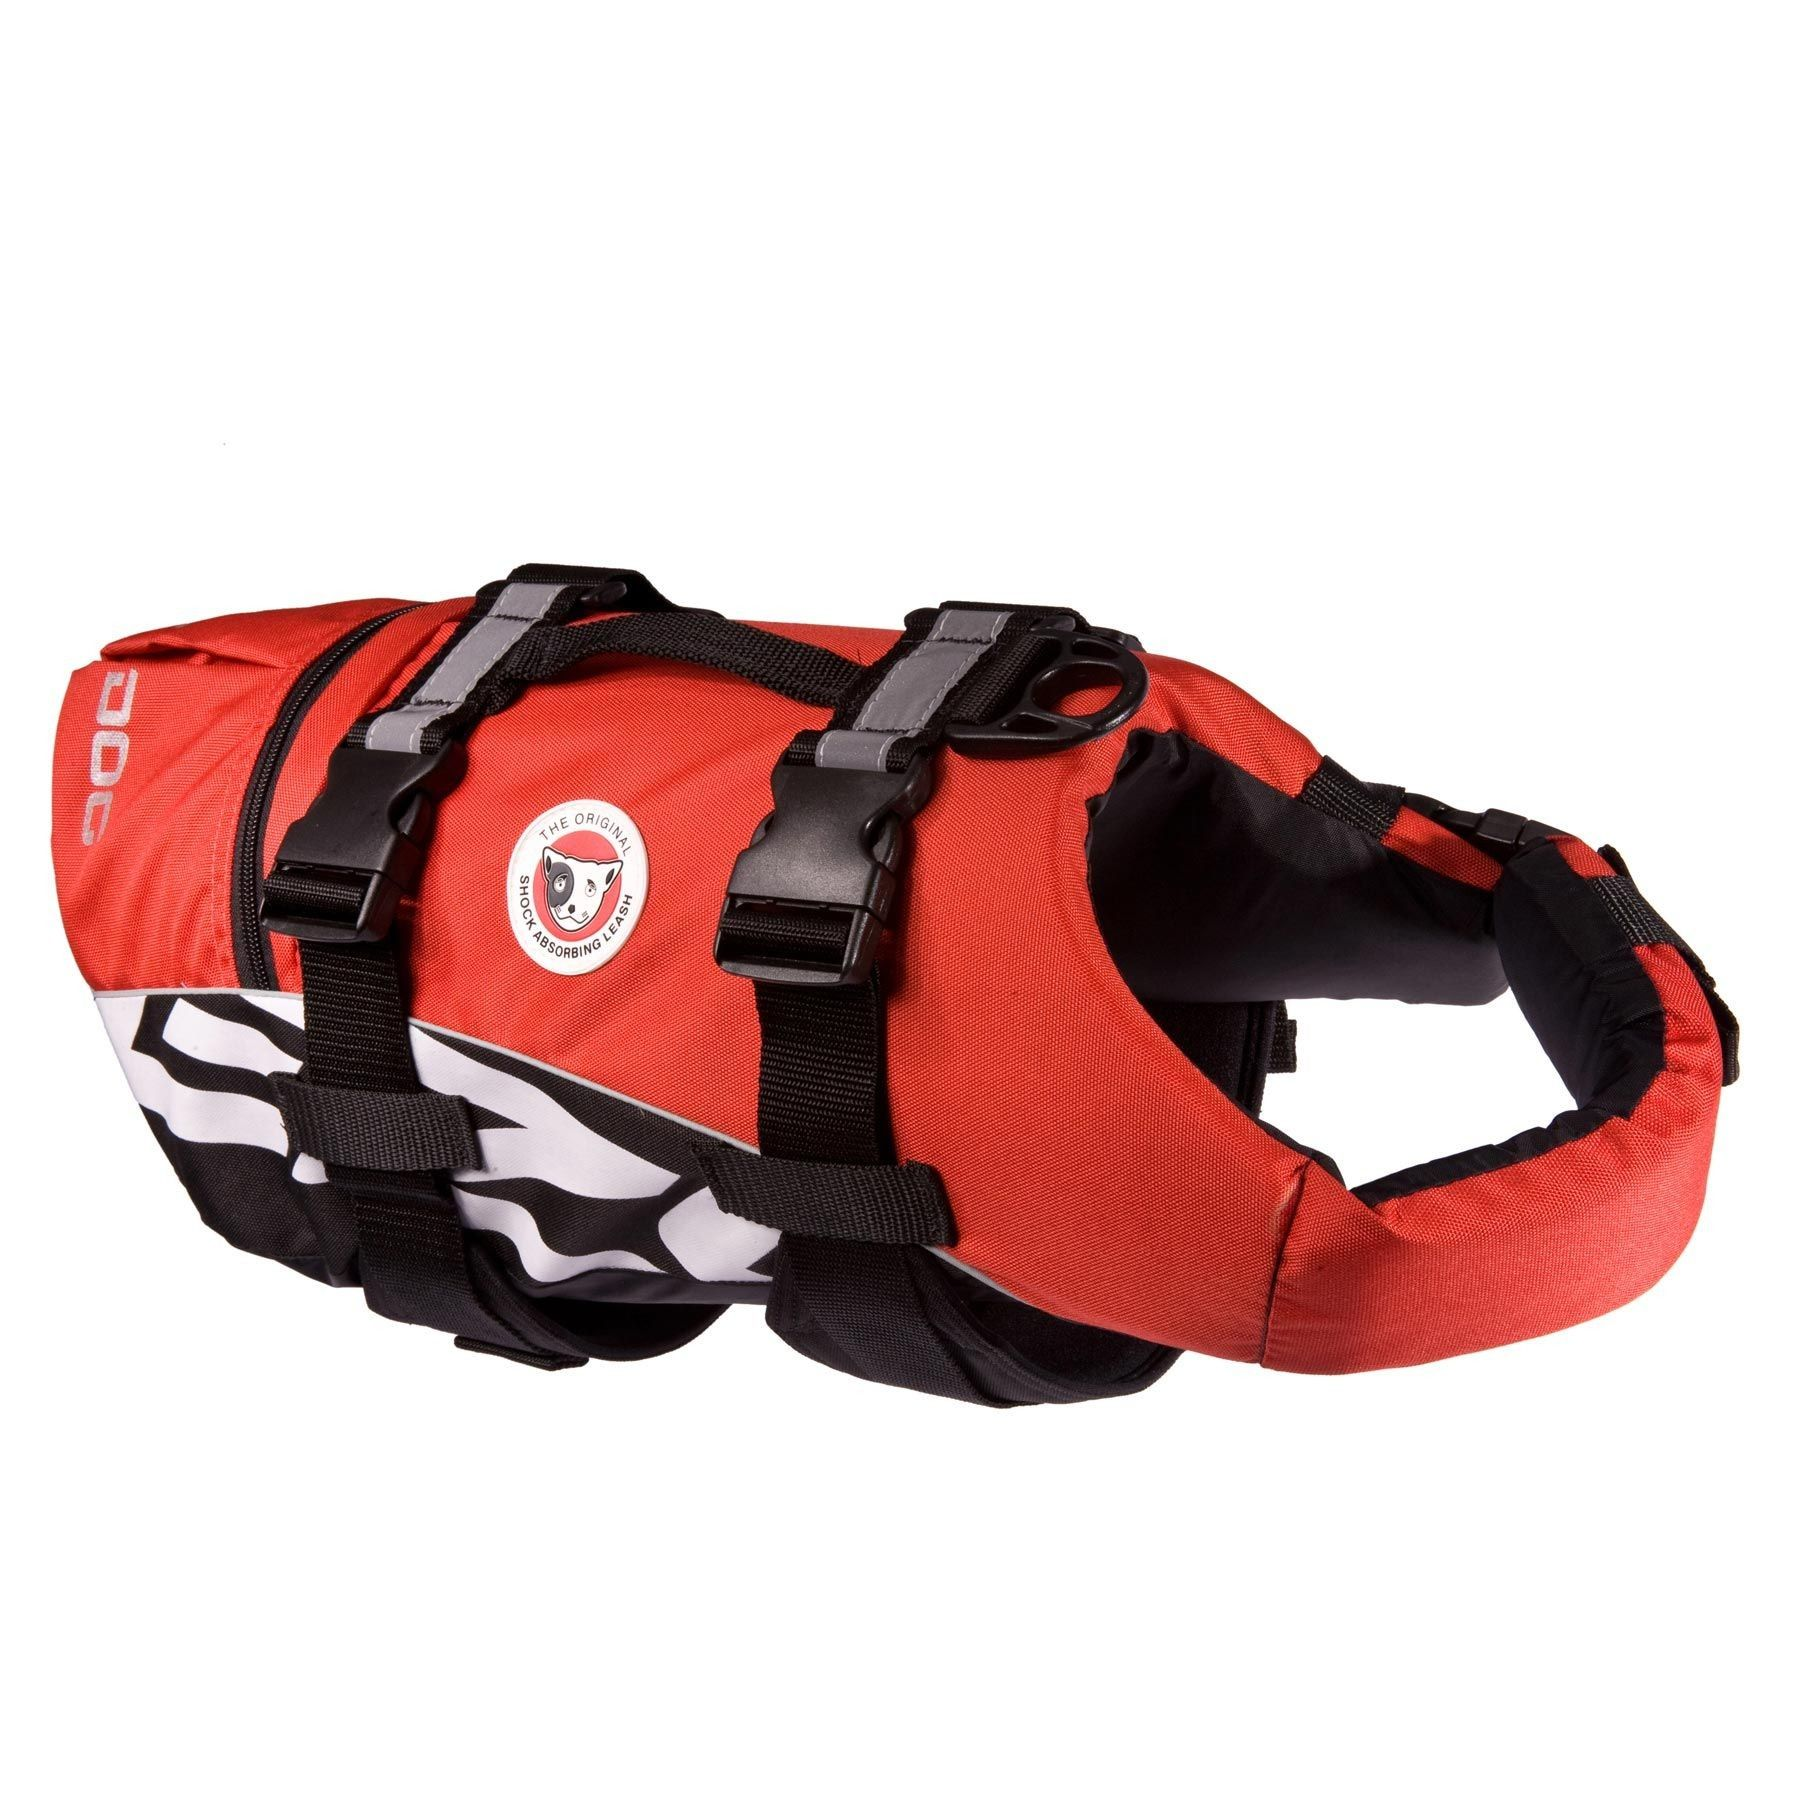 DFD Dog Life Jacket